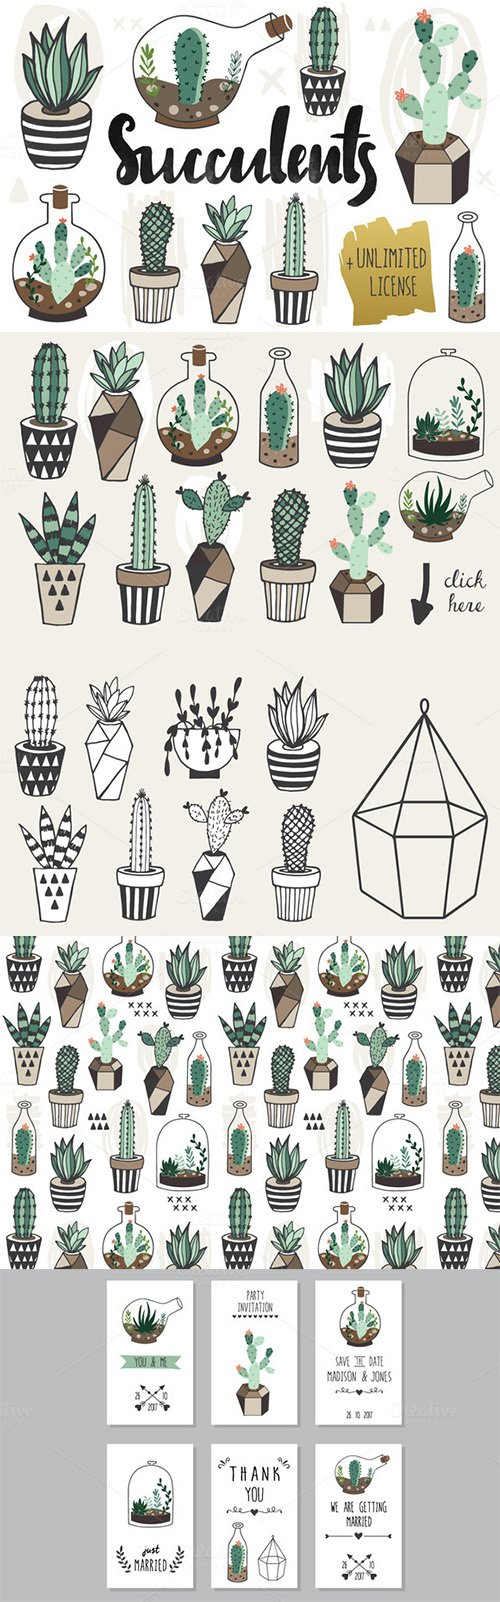 Succulents +Unlimited License - Creativemarket 319899